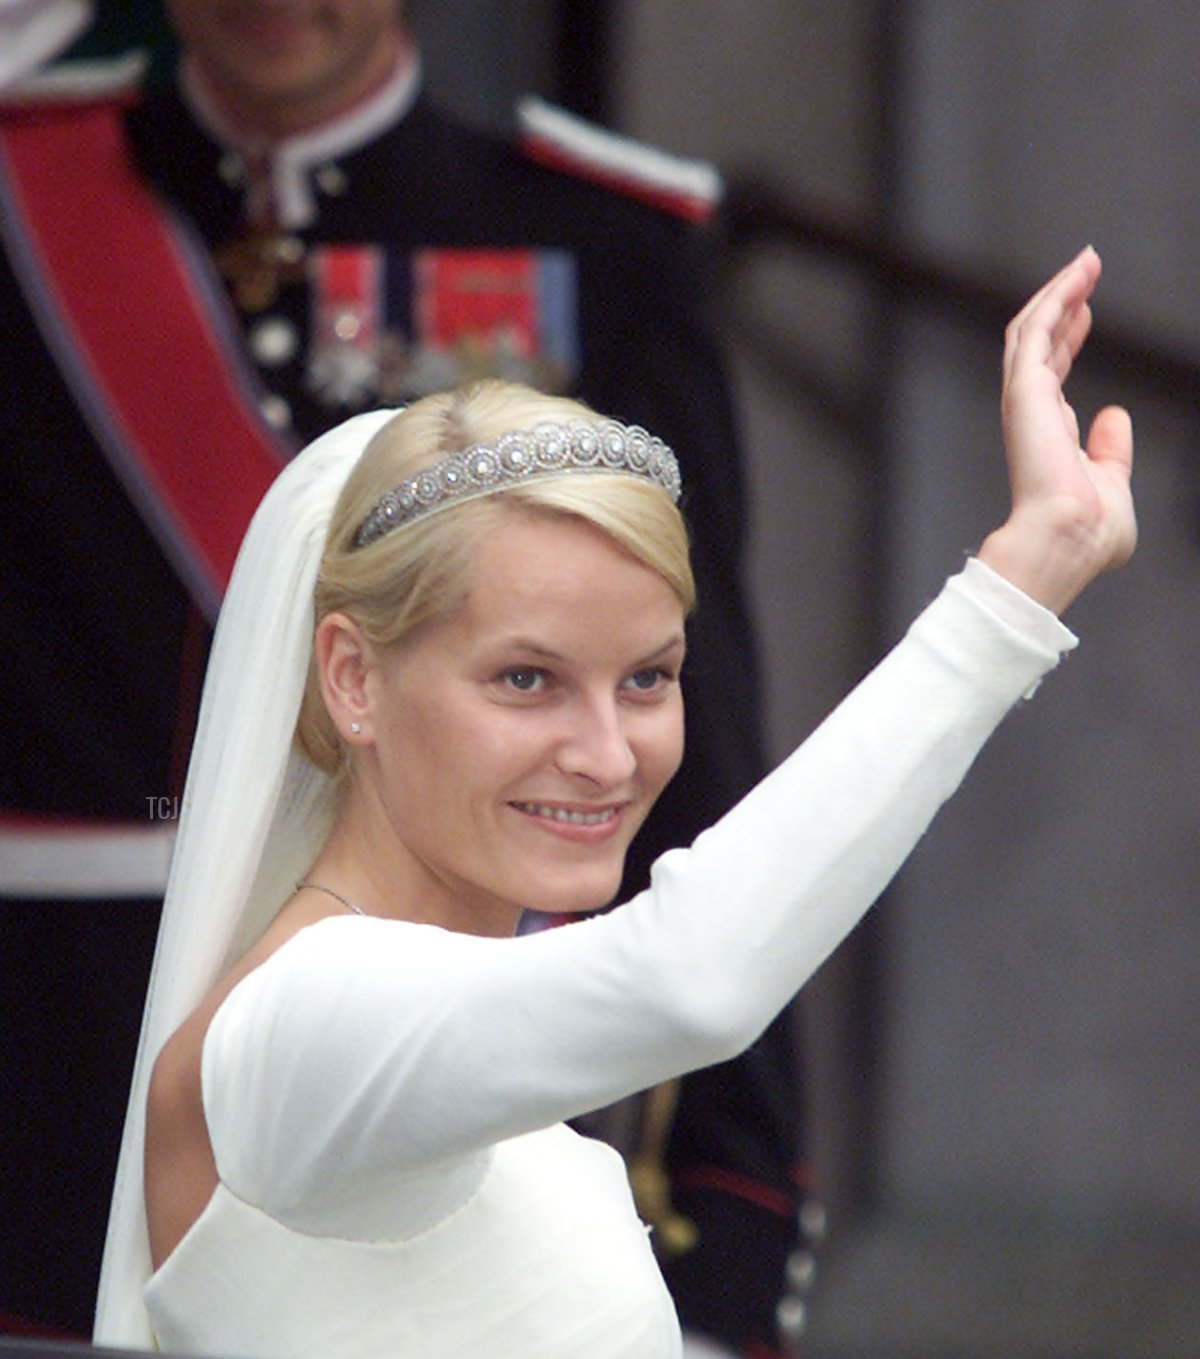 Royal bride Mette-Marit Tjessem Hoeiby waves to wellwishers outside Oslo Cathedral immediately prior to the wedding ceremony 25 August 2001